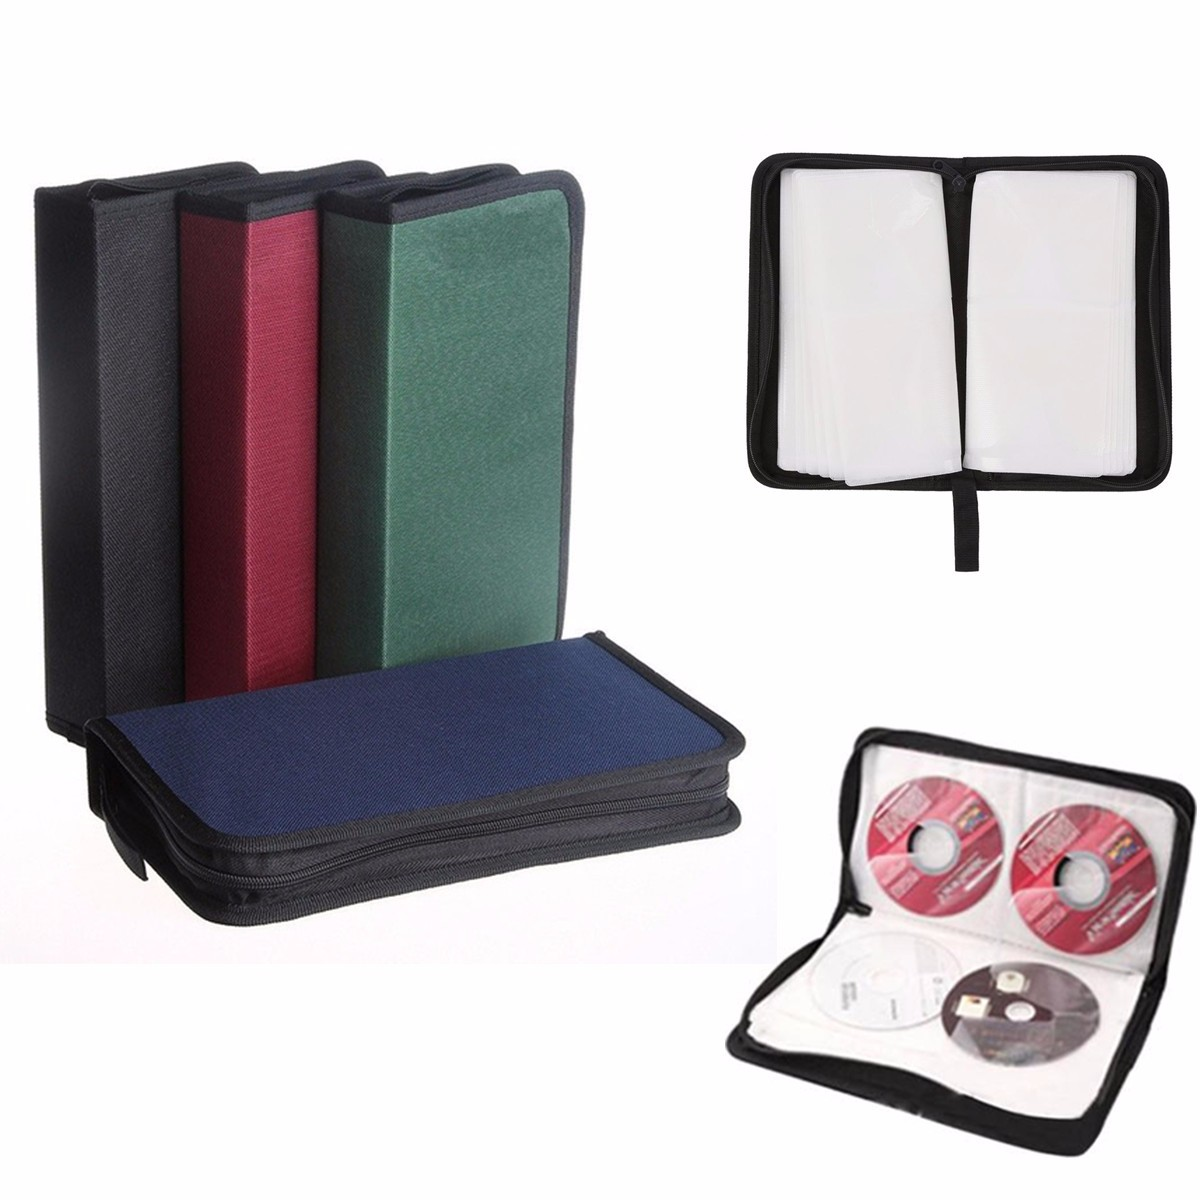 80 Disc Carry Box Holder Package Car Storage <font><b>Bag</b></font> Case Album DVD <font><b>CD</b></font> <font><b>Organizer</b></font> Protective Cover Home Supplies image